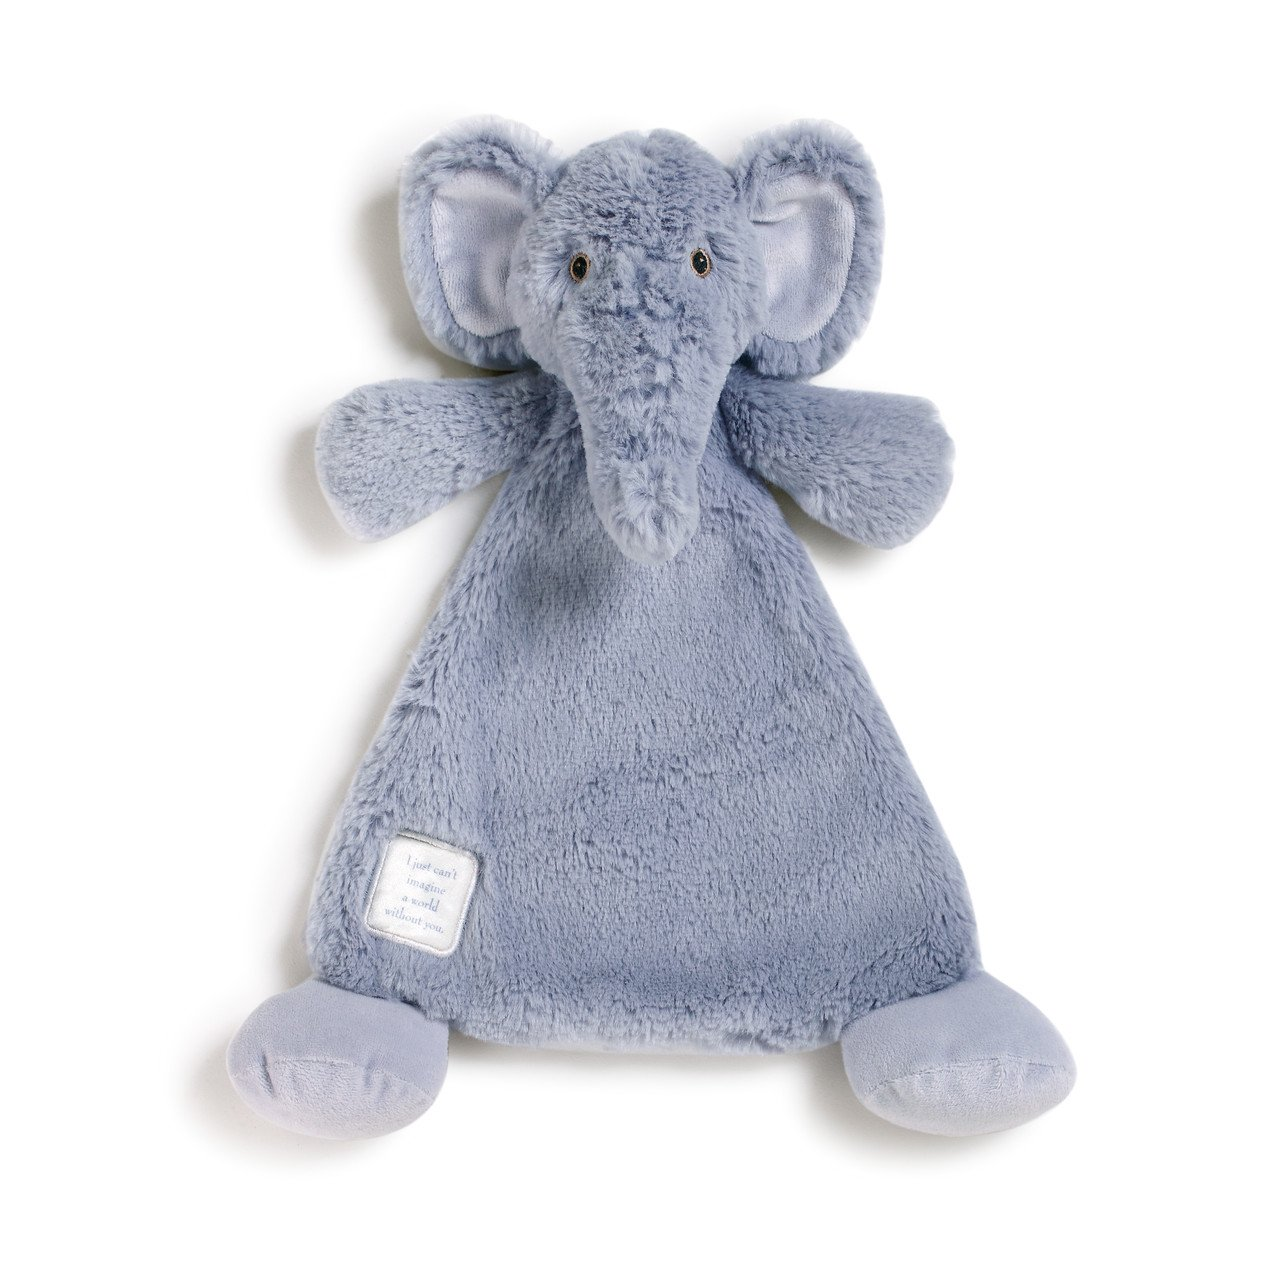 Elephant Blankie 12 inch - Baby Stuffed Animal by Nat and Jules (5004700565)